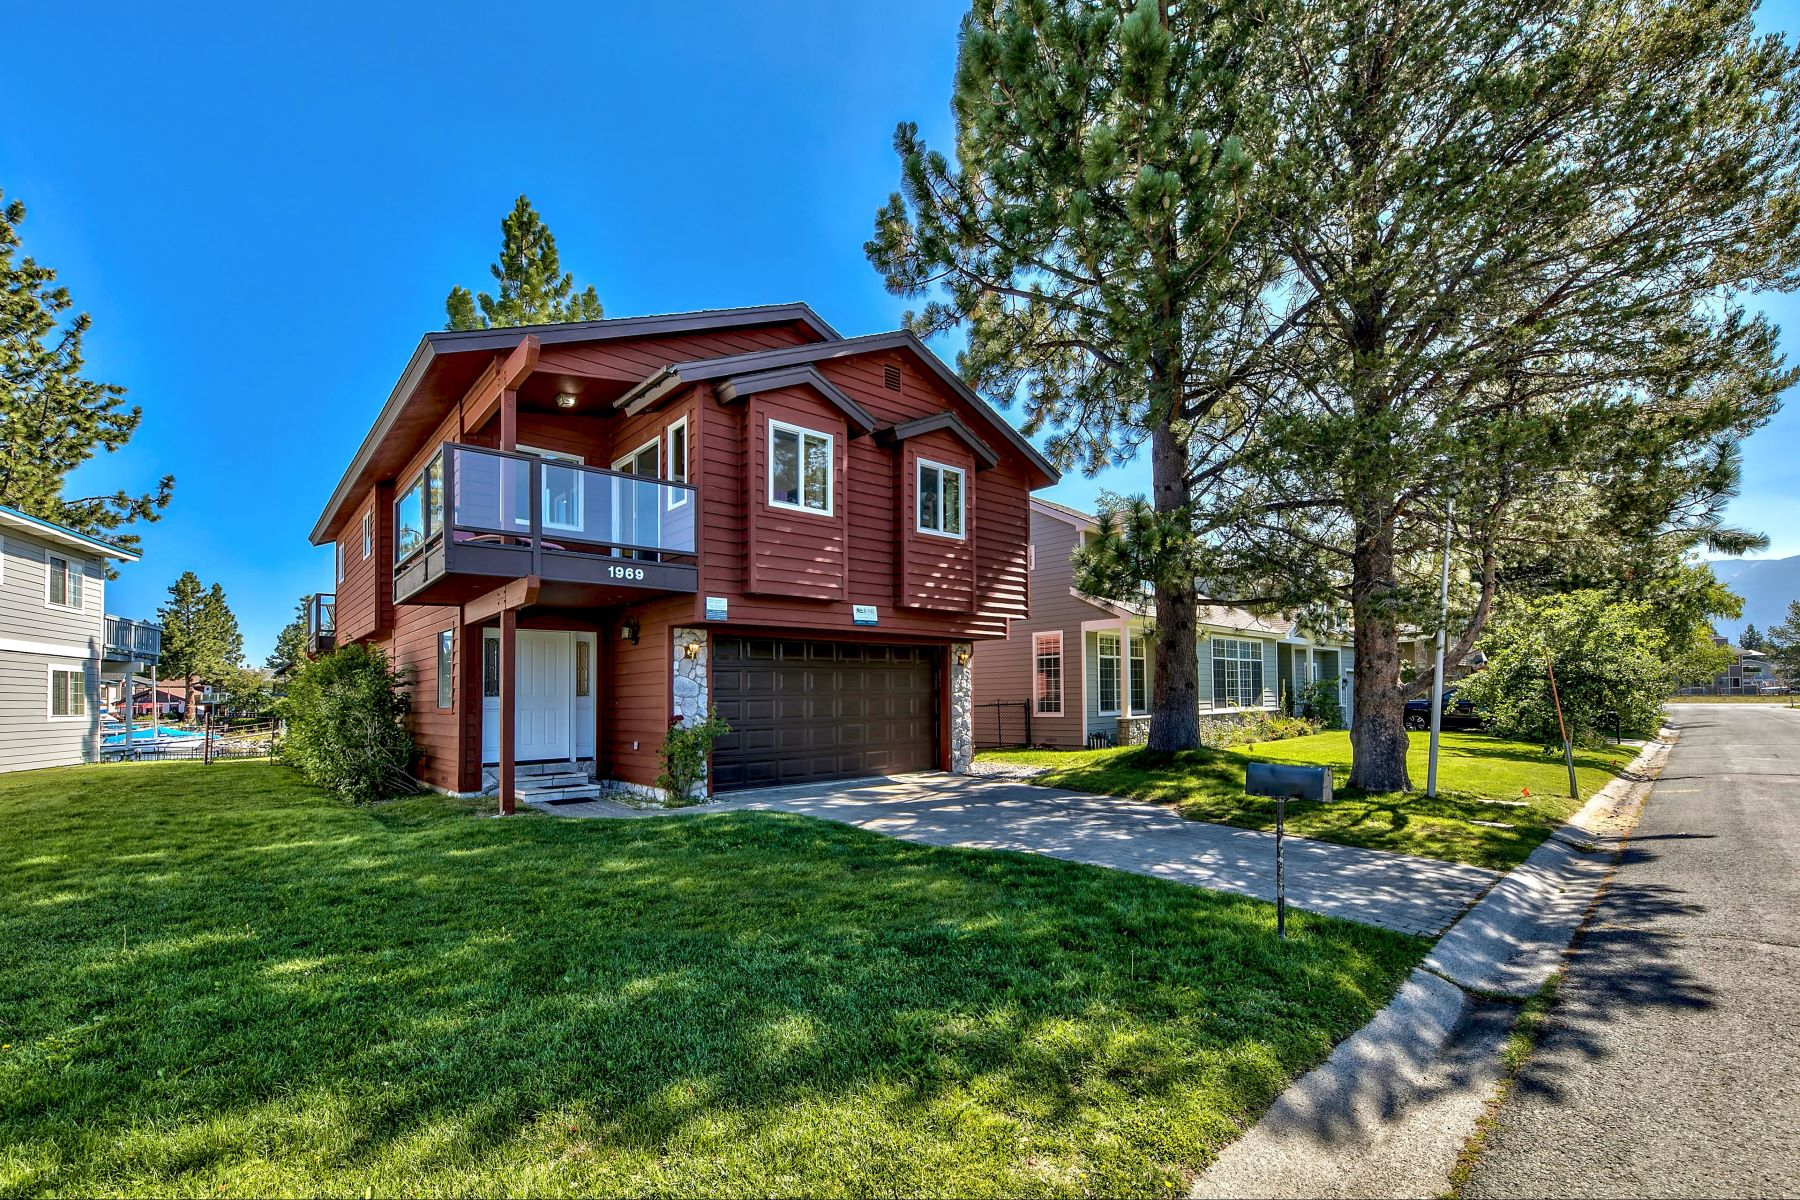 Single Family Homes for Active at Gorgeous Tahoe Keys waterfront home. 1969 Marconi Way South Lake Tahoe, California 96150 United States